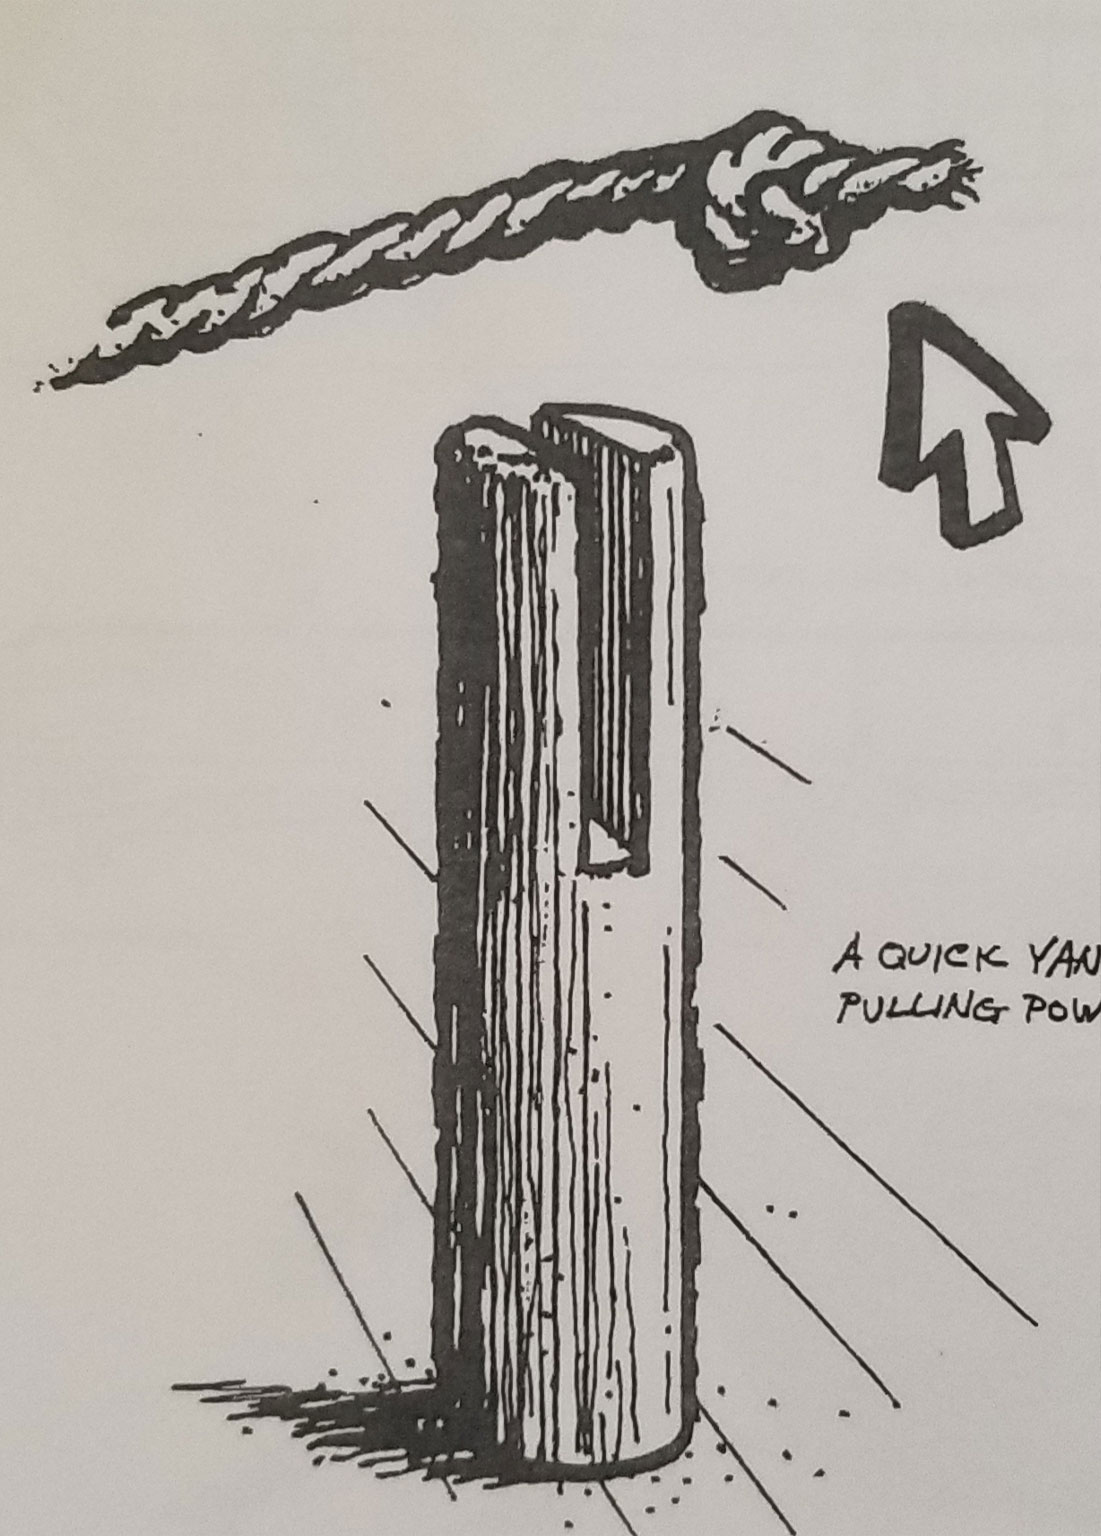 The towpost was half way down the boat deck and was used for the tow rope to slide in and out of the post for easy removal when they needed to lock in and out of the locks.